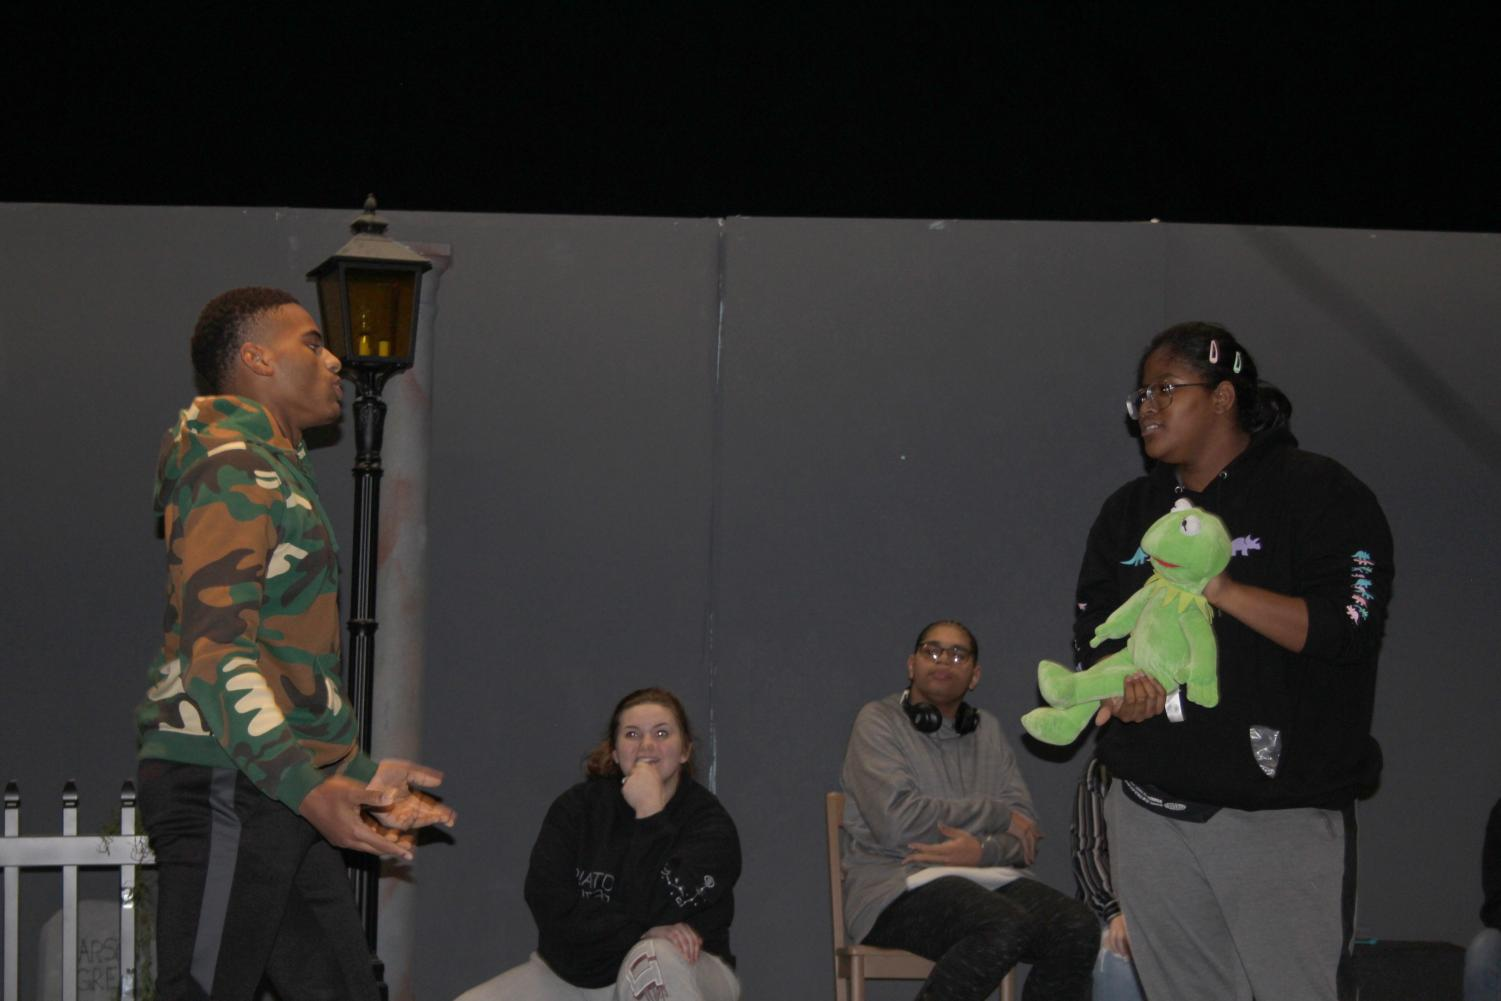 Kermit stops in to play a game of 'Stop!' with Zion Sims and Jeremiah Smith